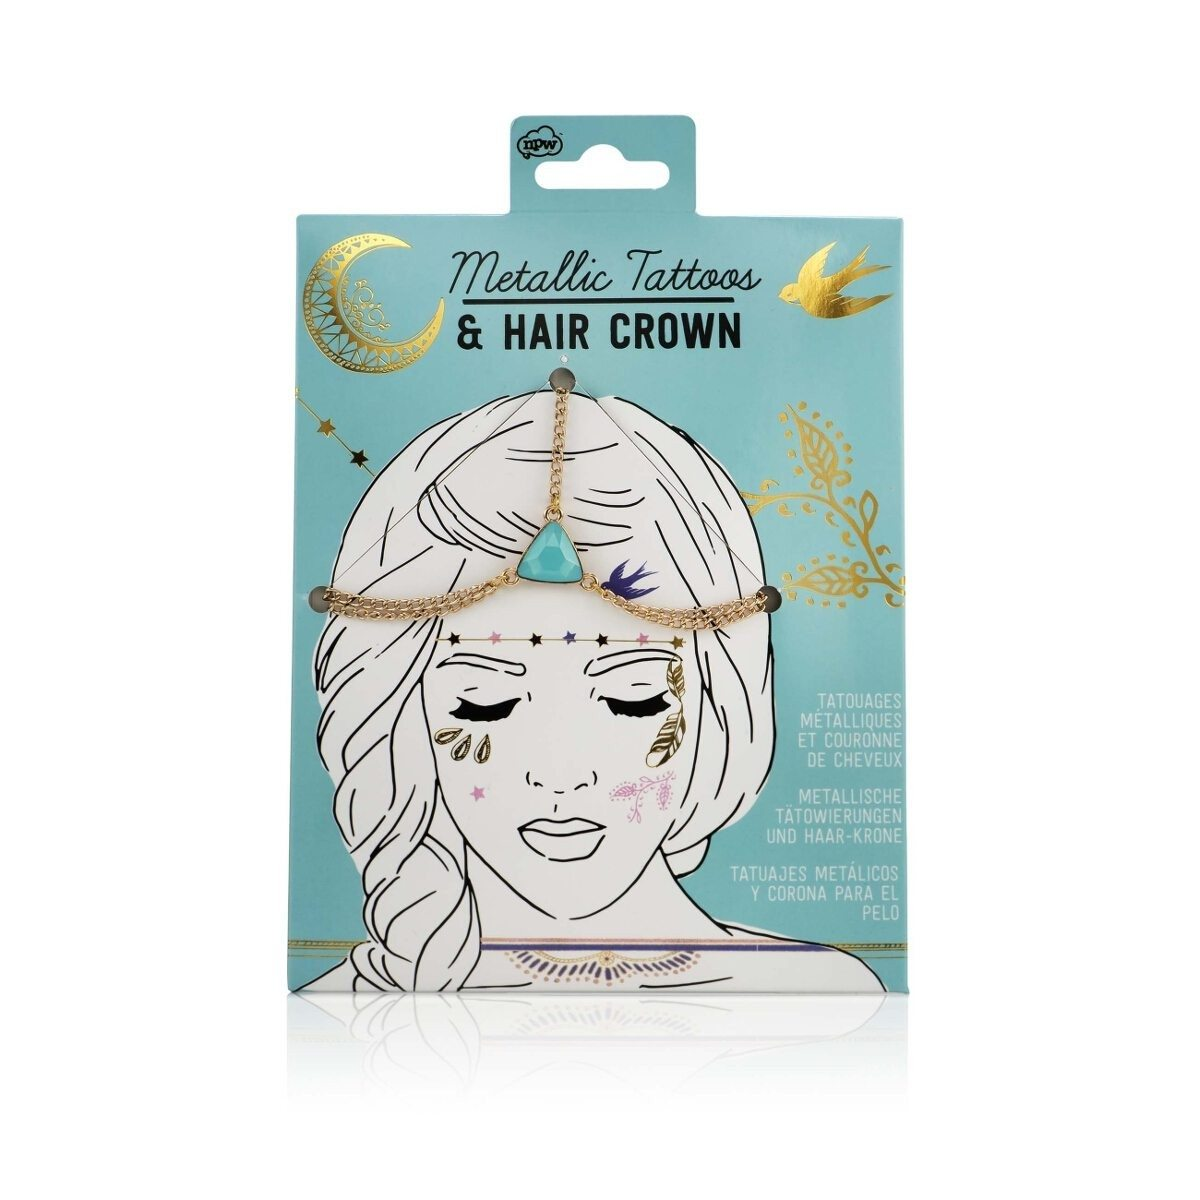 Hair Crown and Tattoo Set